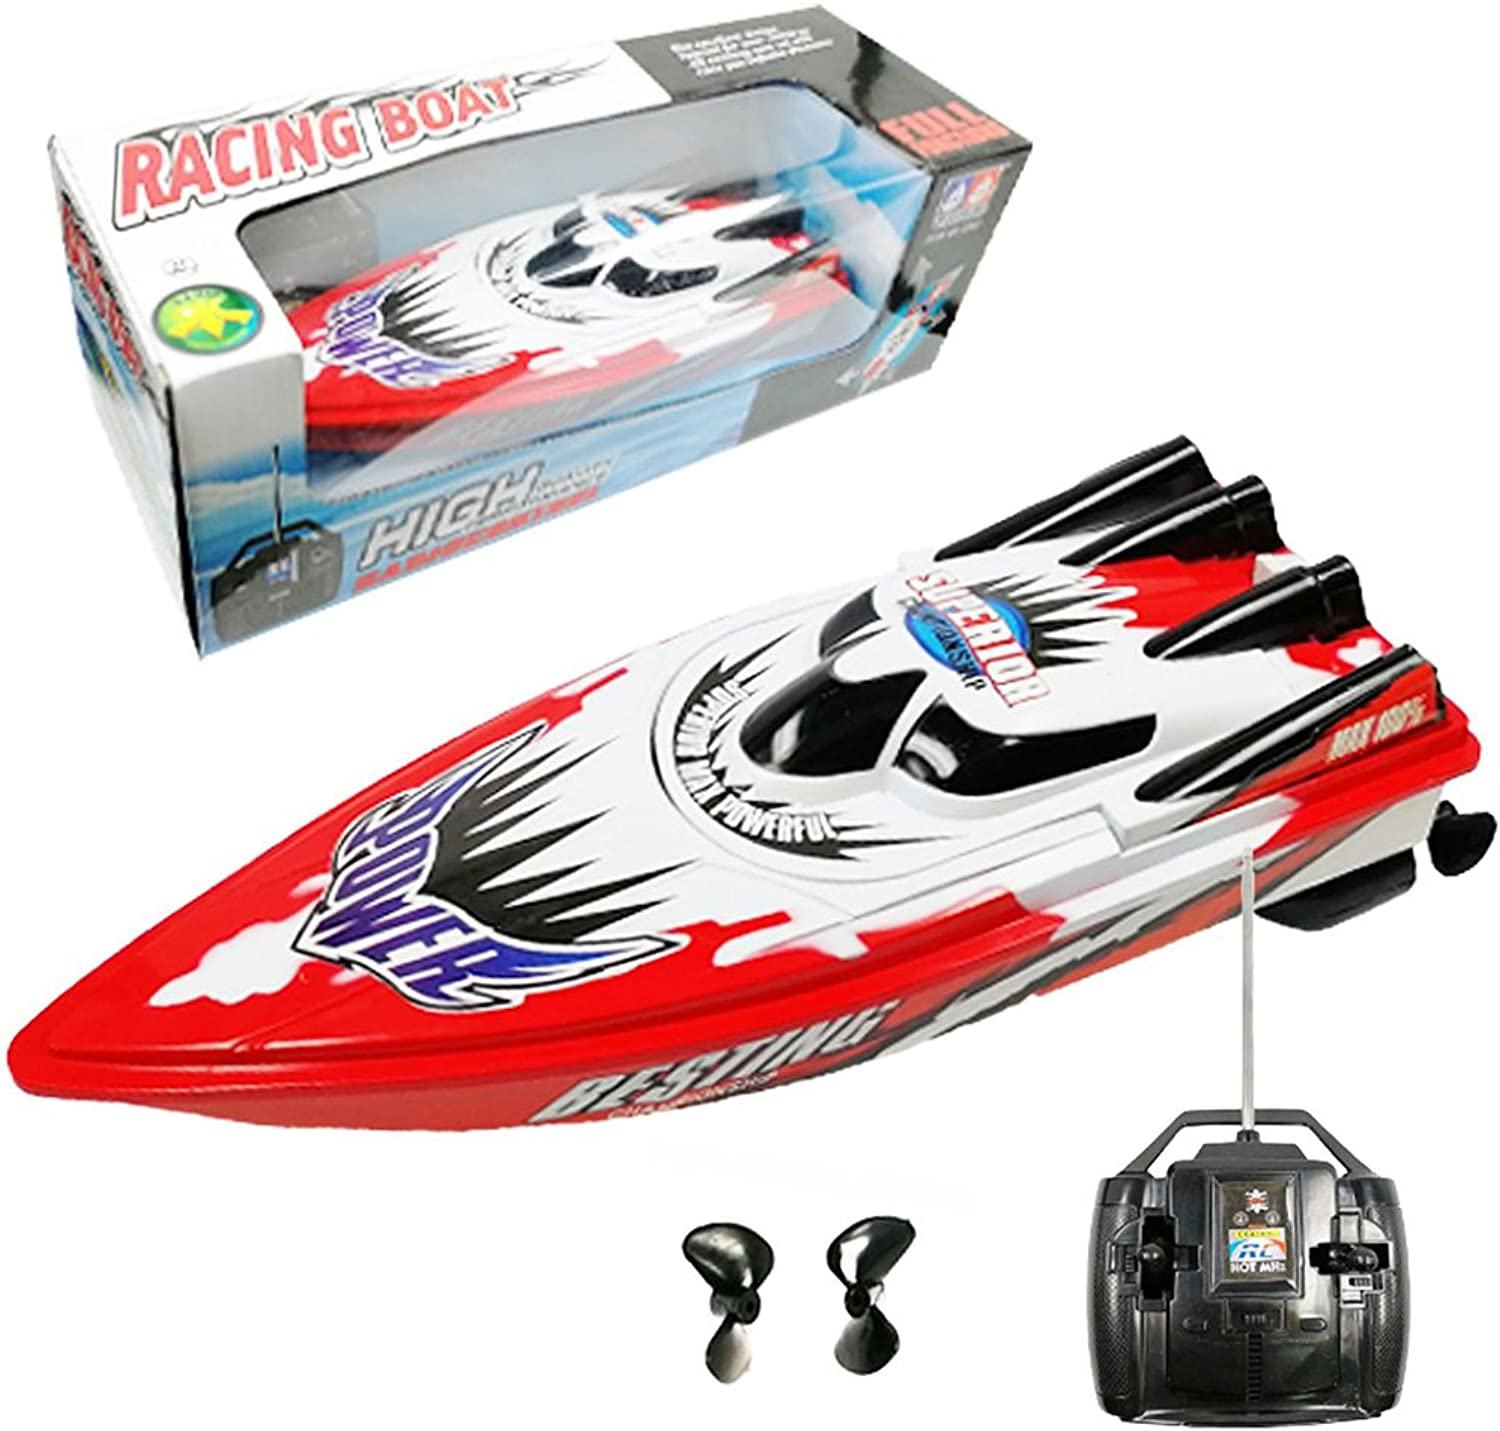 Generic Non Rechargeable High Speed Remote Control Yacht 2 Motors Rapid Speedboat Boat Red